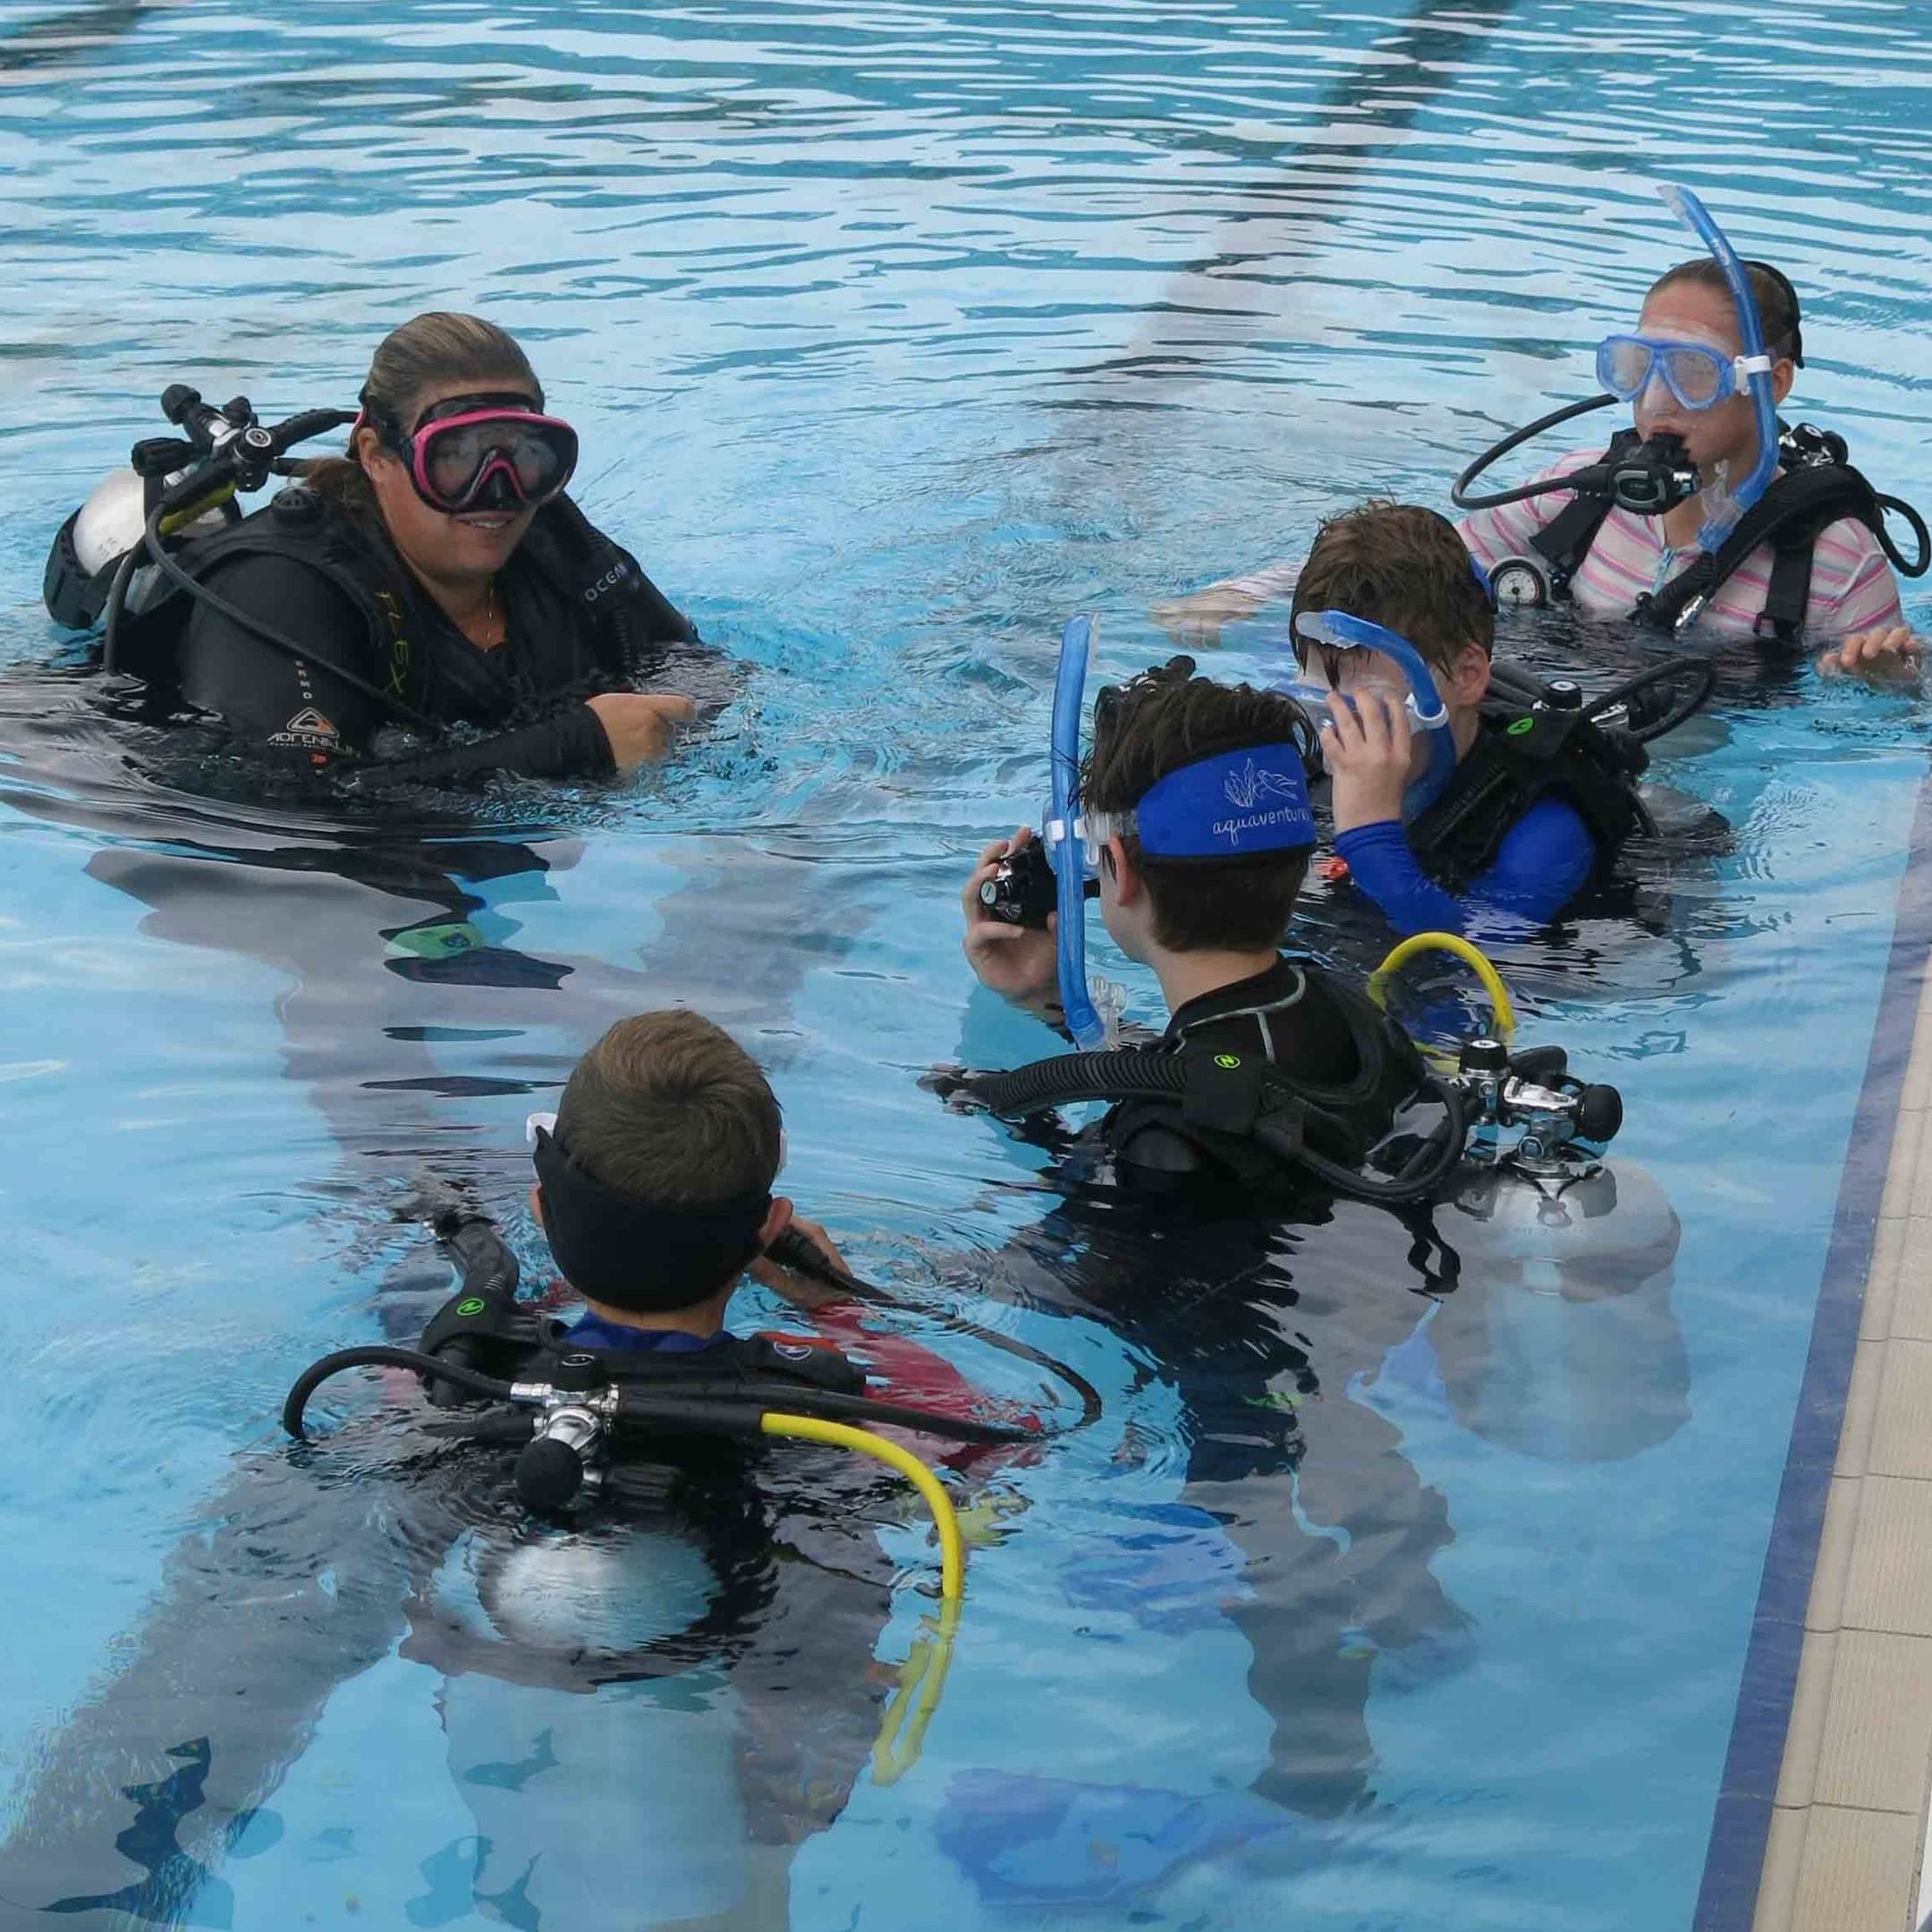 8. A future career - As a scuba diver there are so many fun and exciting jobs it could lead to. From teaching others to dive, surveying the reef to conserve its health, working as a commercial diver, an underwater investigator or filming the next ocean documentary! The world is your oyster!